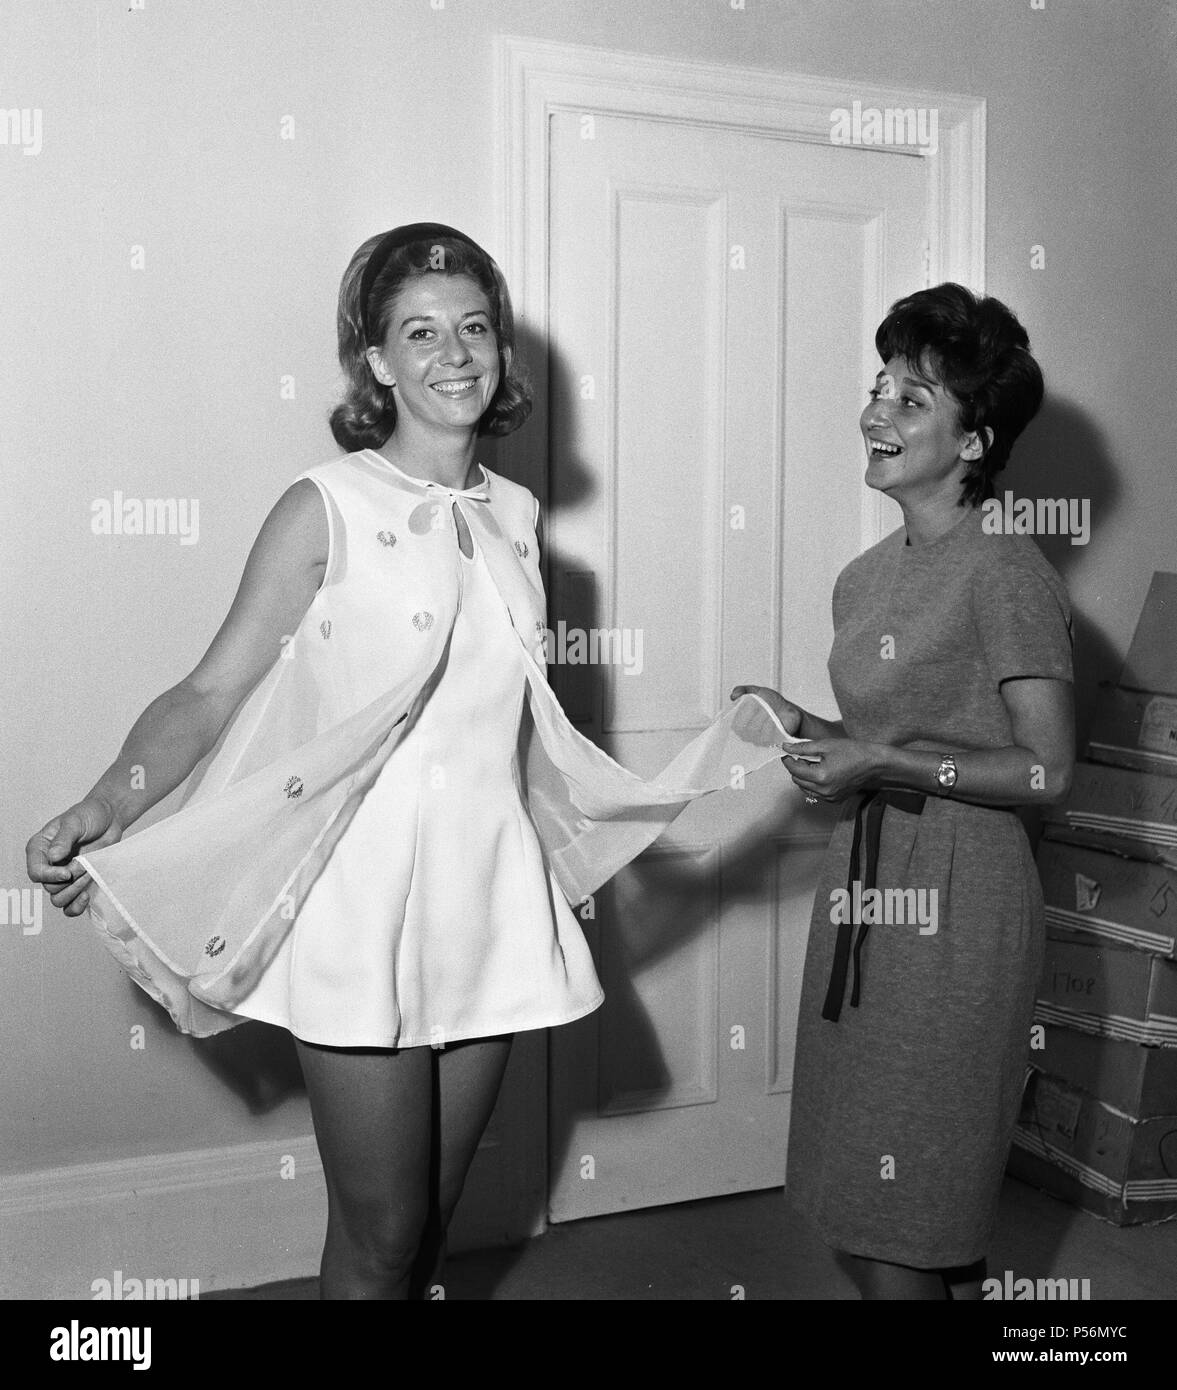 Pre Wimbledon Fashions Photoshoot. Lea Pericoli wearing a princess line tennis dress in tricel with petal cutouts on neckline topped by a nylon organza cloack embroidered with a gold laurel wreath motif. She is showing her dress to S. Lazzarino who will also be wearing it when they play in the Doubles at Wimbledon. 20th June 1963. - Stock Image